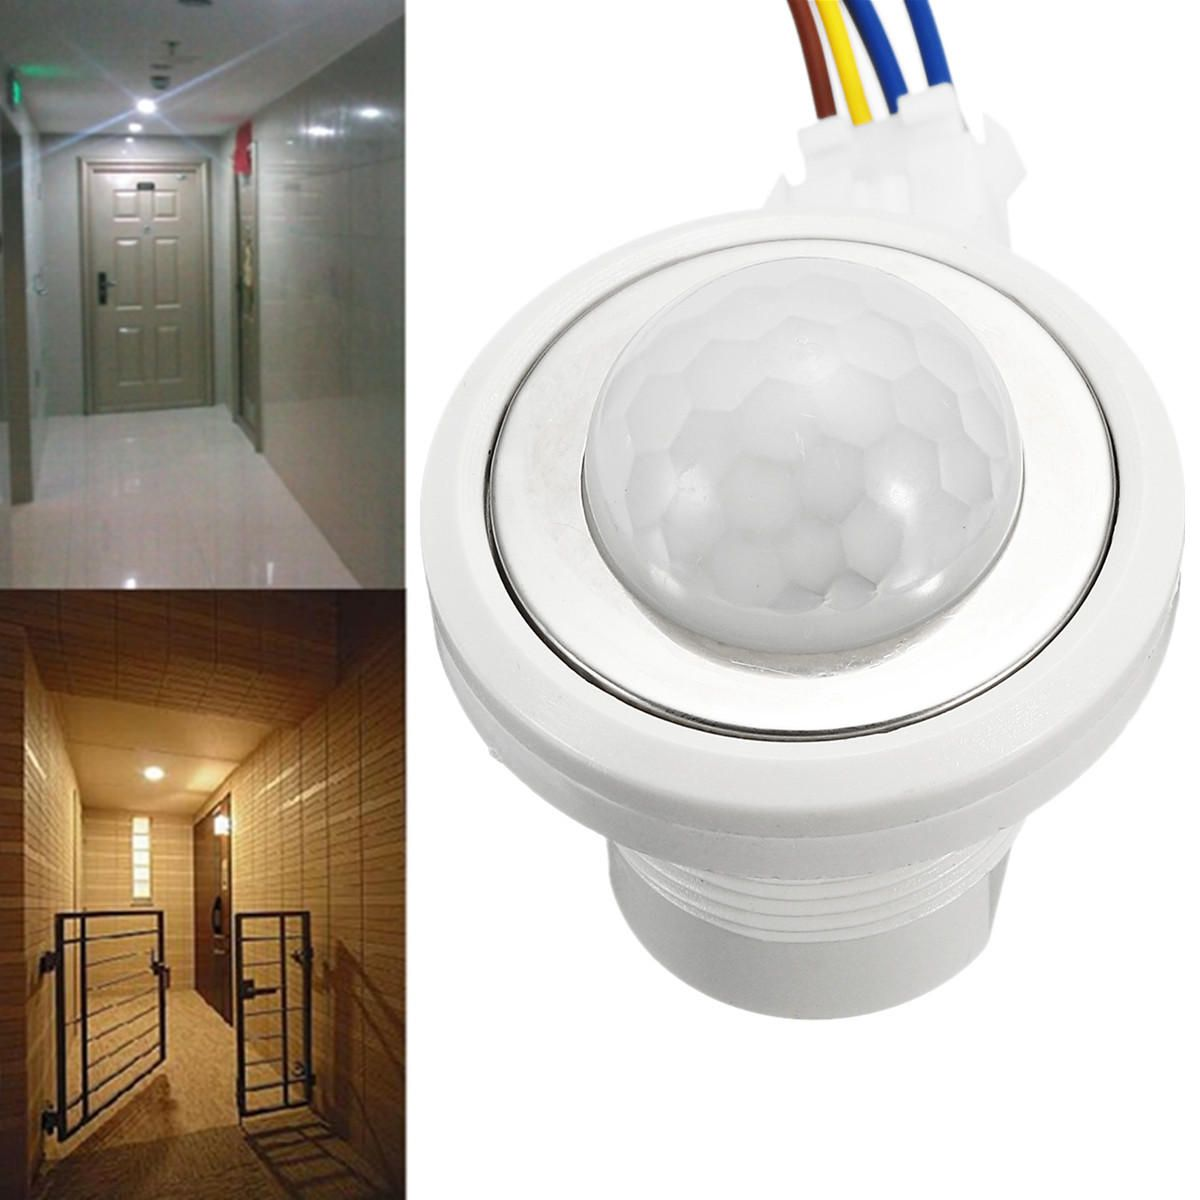 Infrared Sensor Automatic Lamp Circuit 5 Ledandlightcircuit